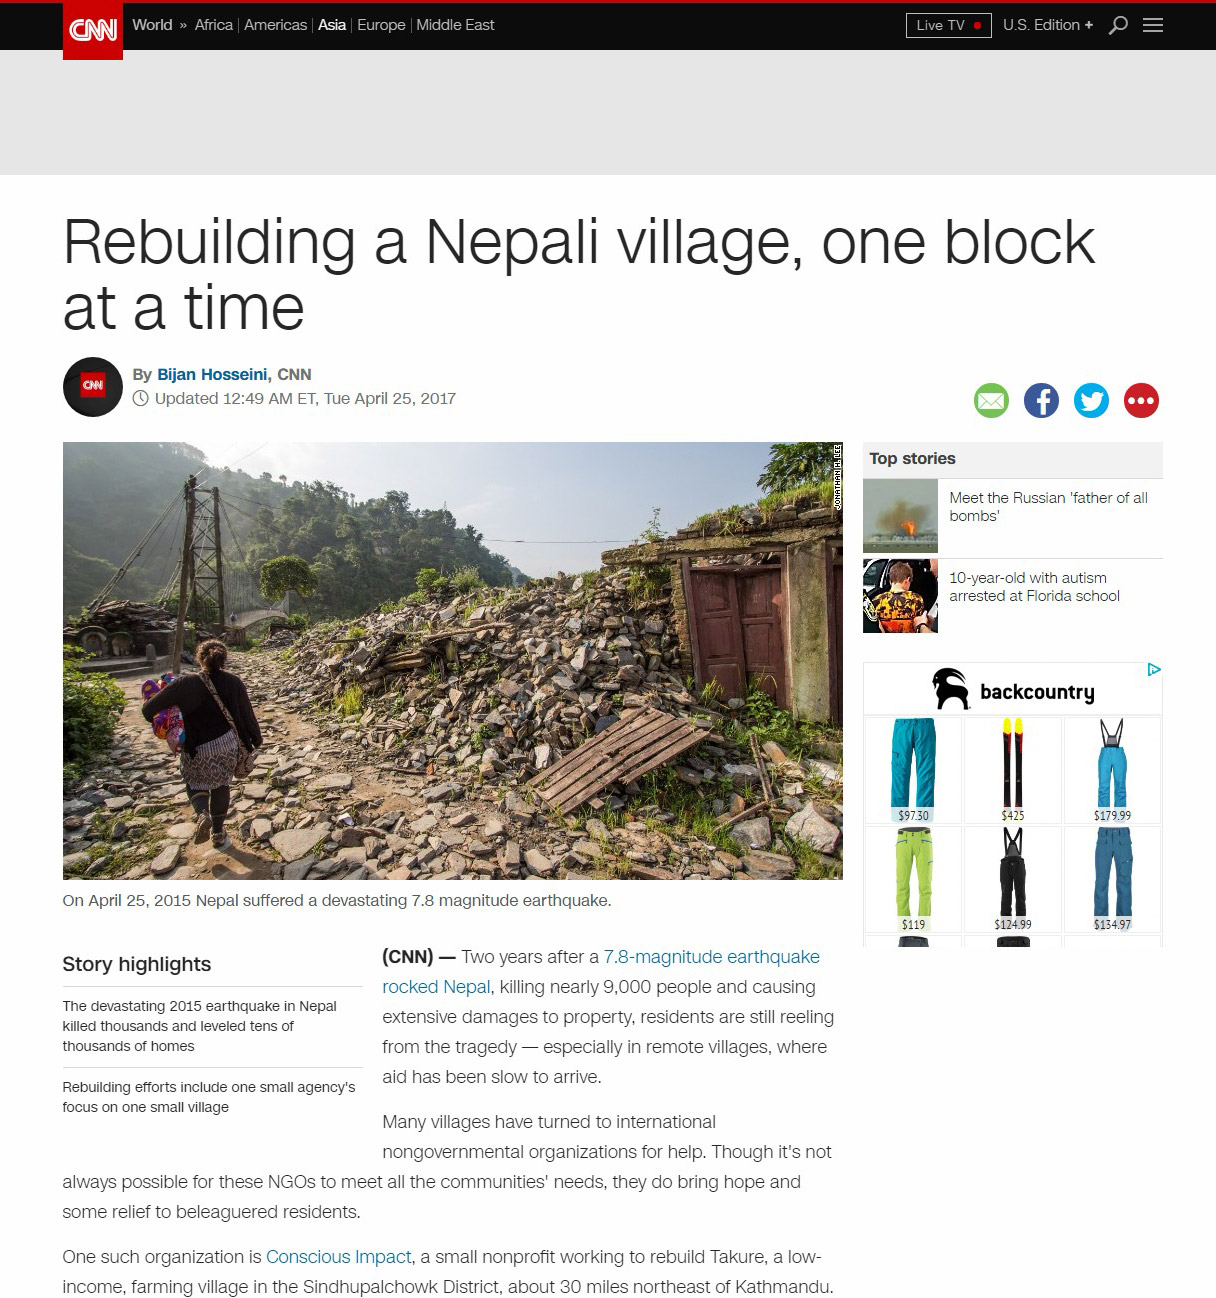 CNN  article  published on 25 April 2017 on the 2nd anniversery of the 2015 earthquakes featuring  Conscious Impact , a grassroots organization collaborating with locals to rebuild in rural Nepal.